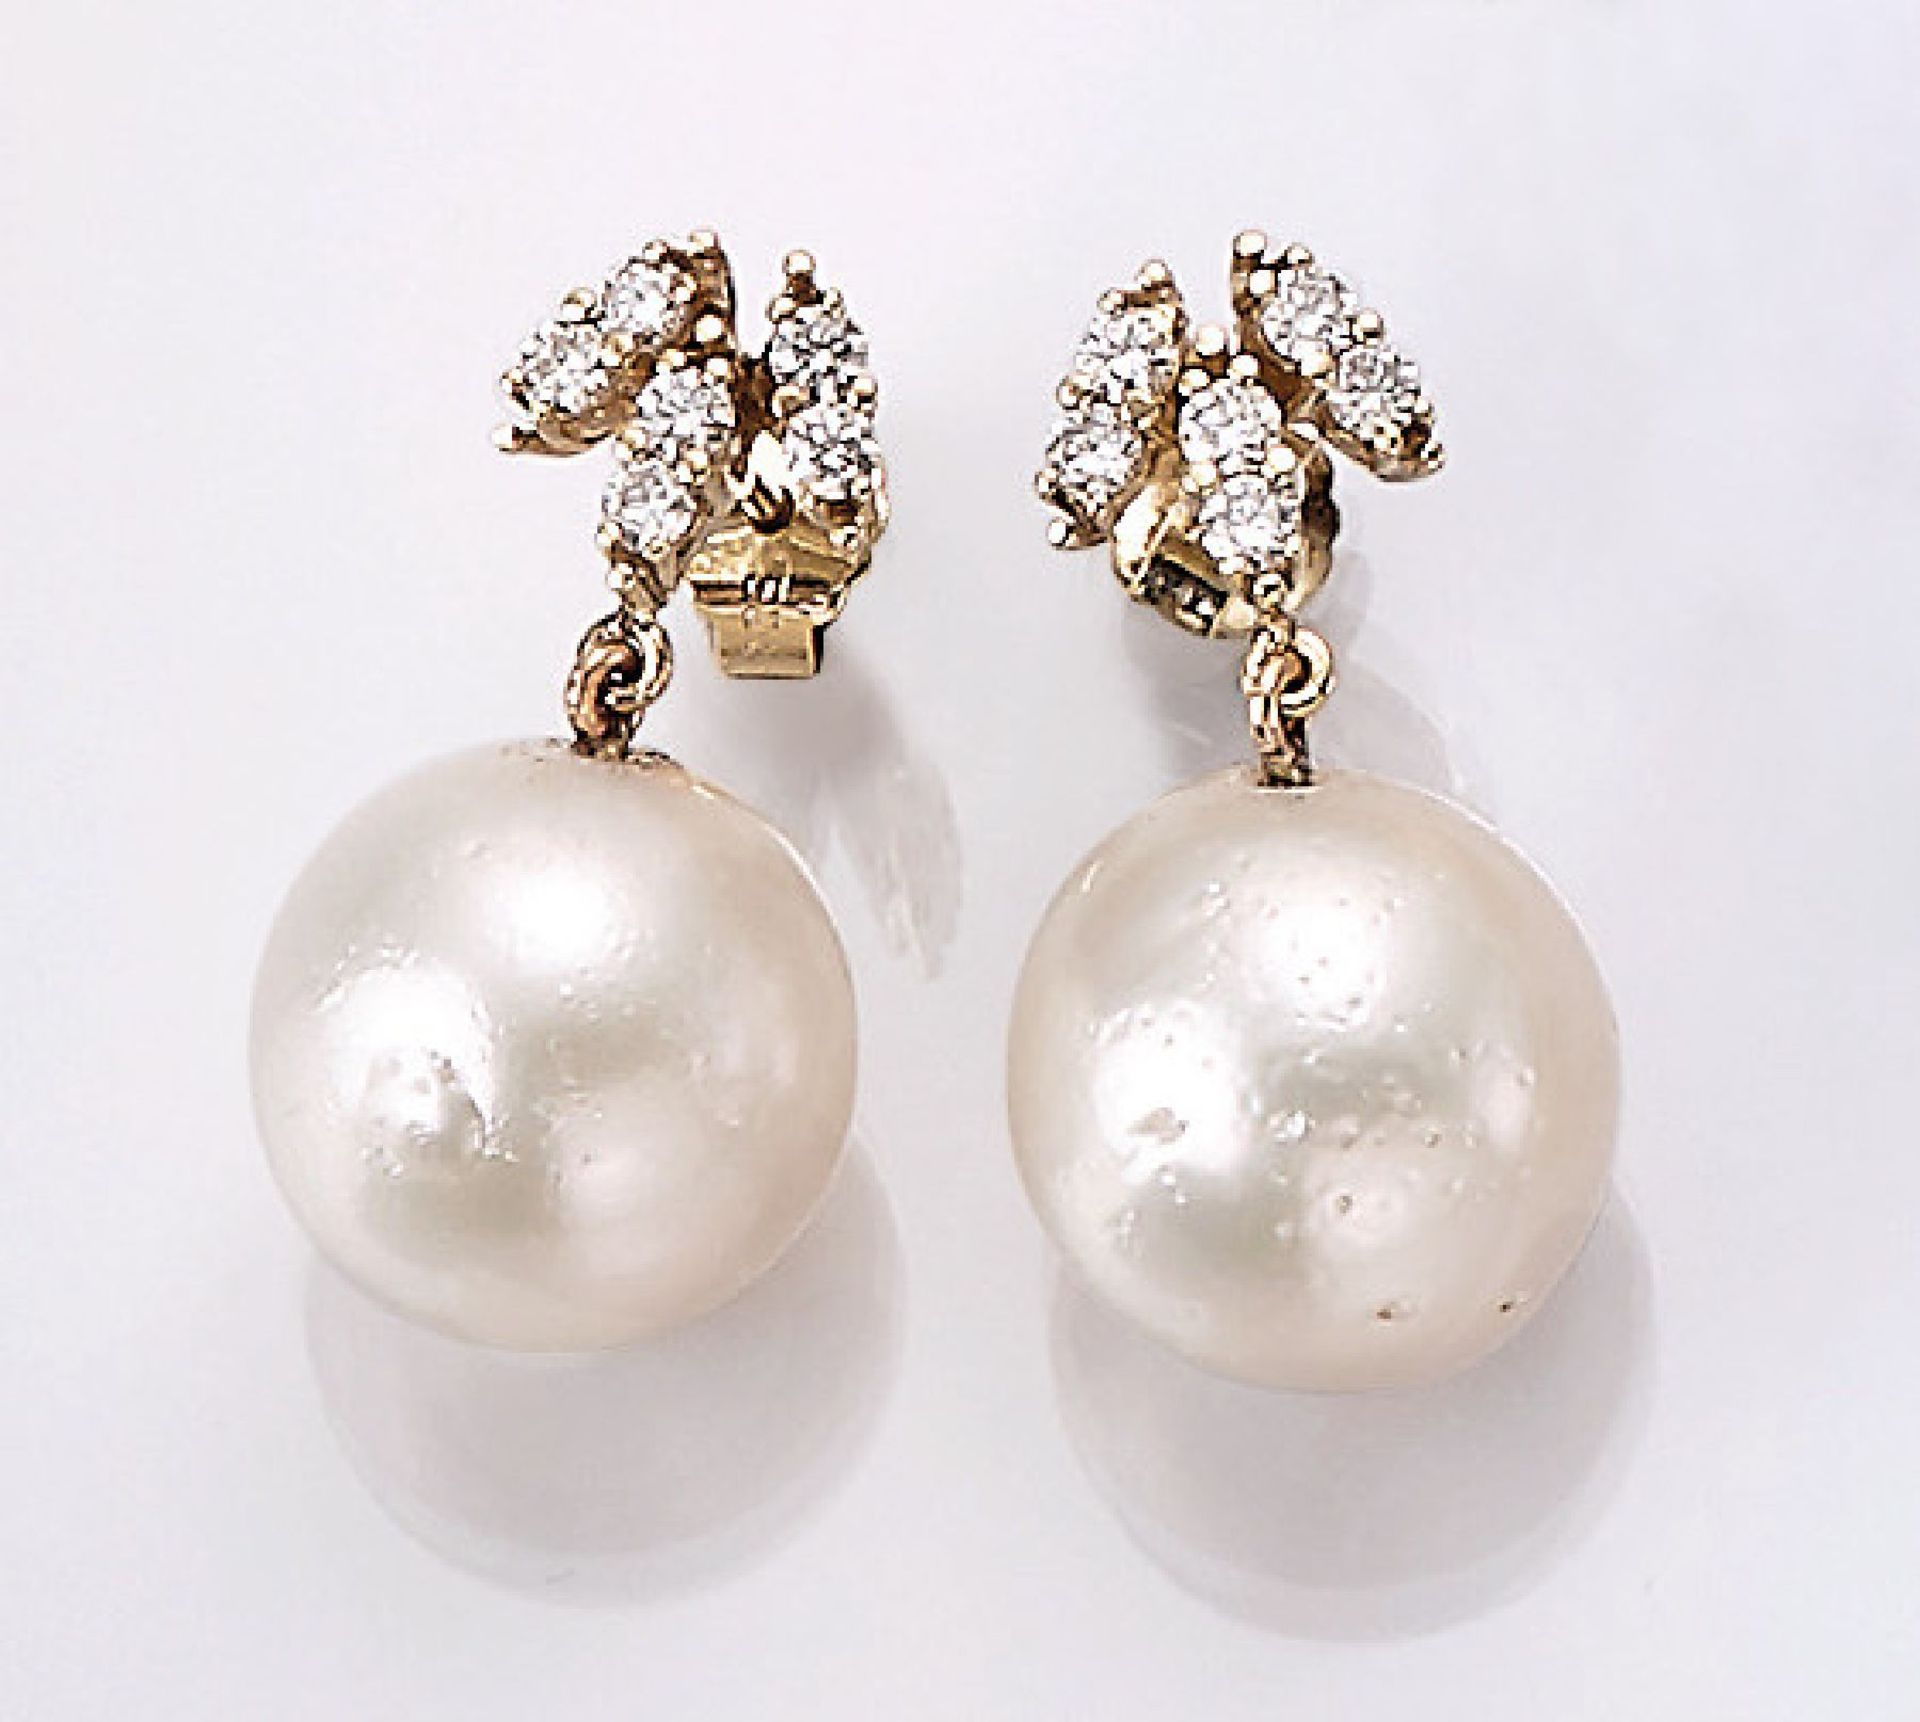 Los 31514 - Pair of 14 kt gold earrings with pearls and brilliants , YG 585/000, 2 white cultured south seas